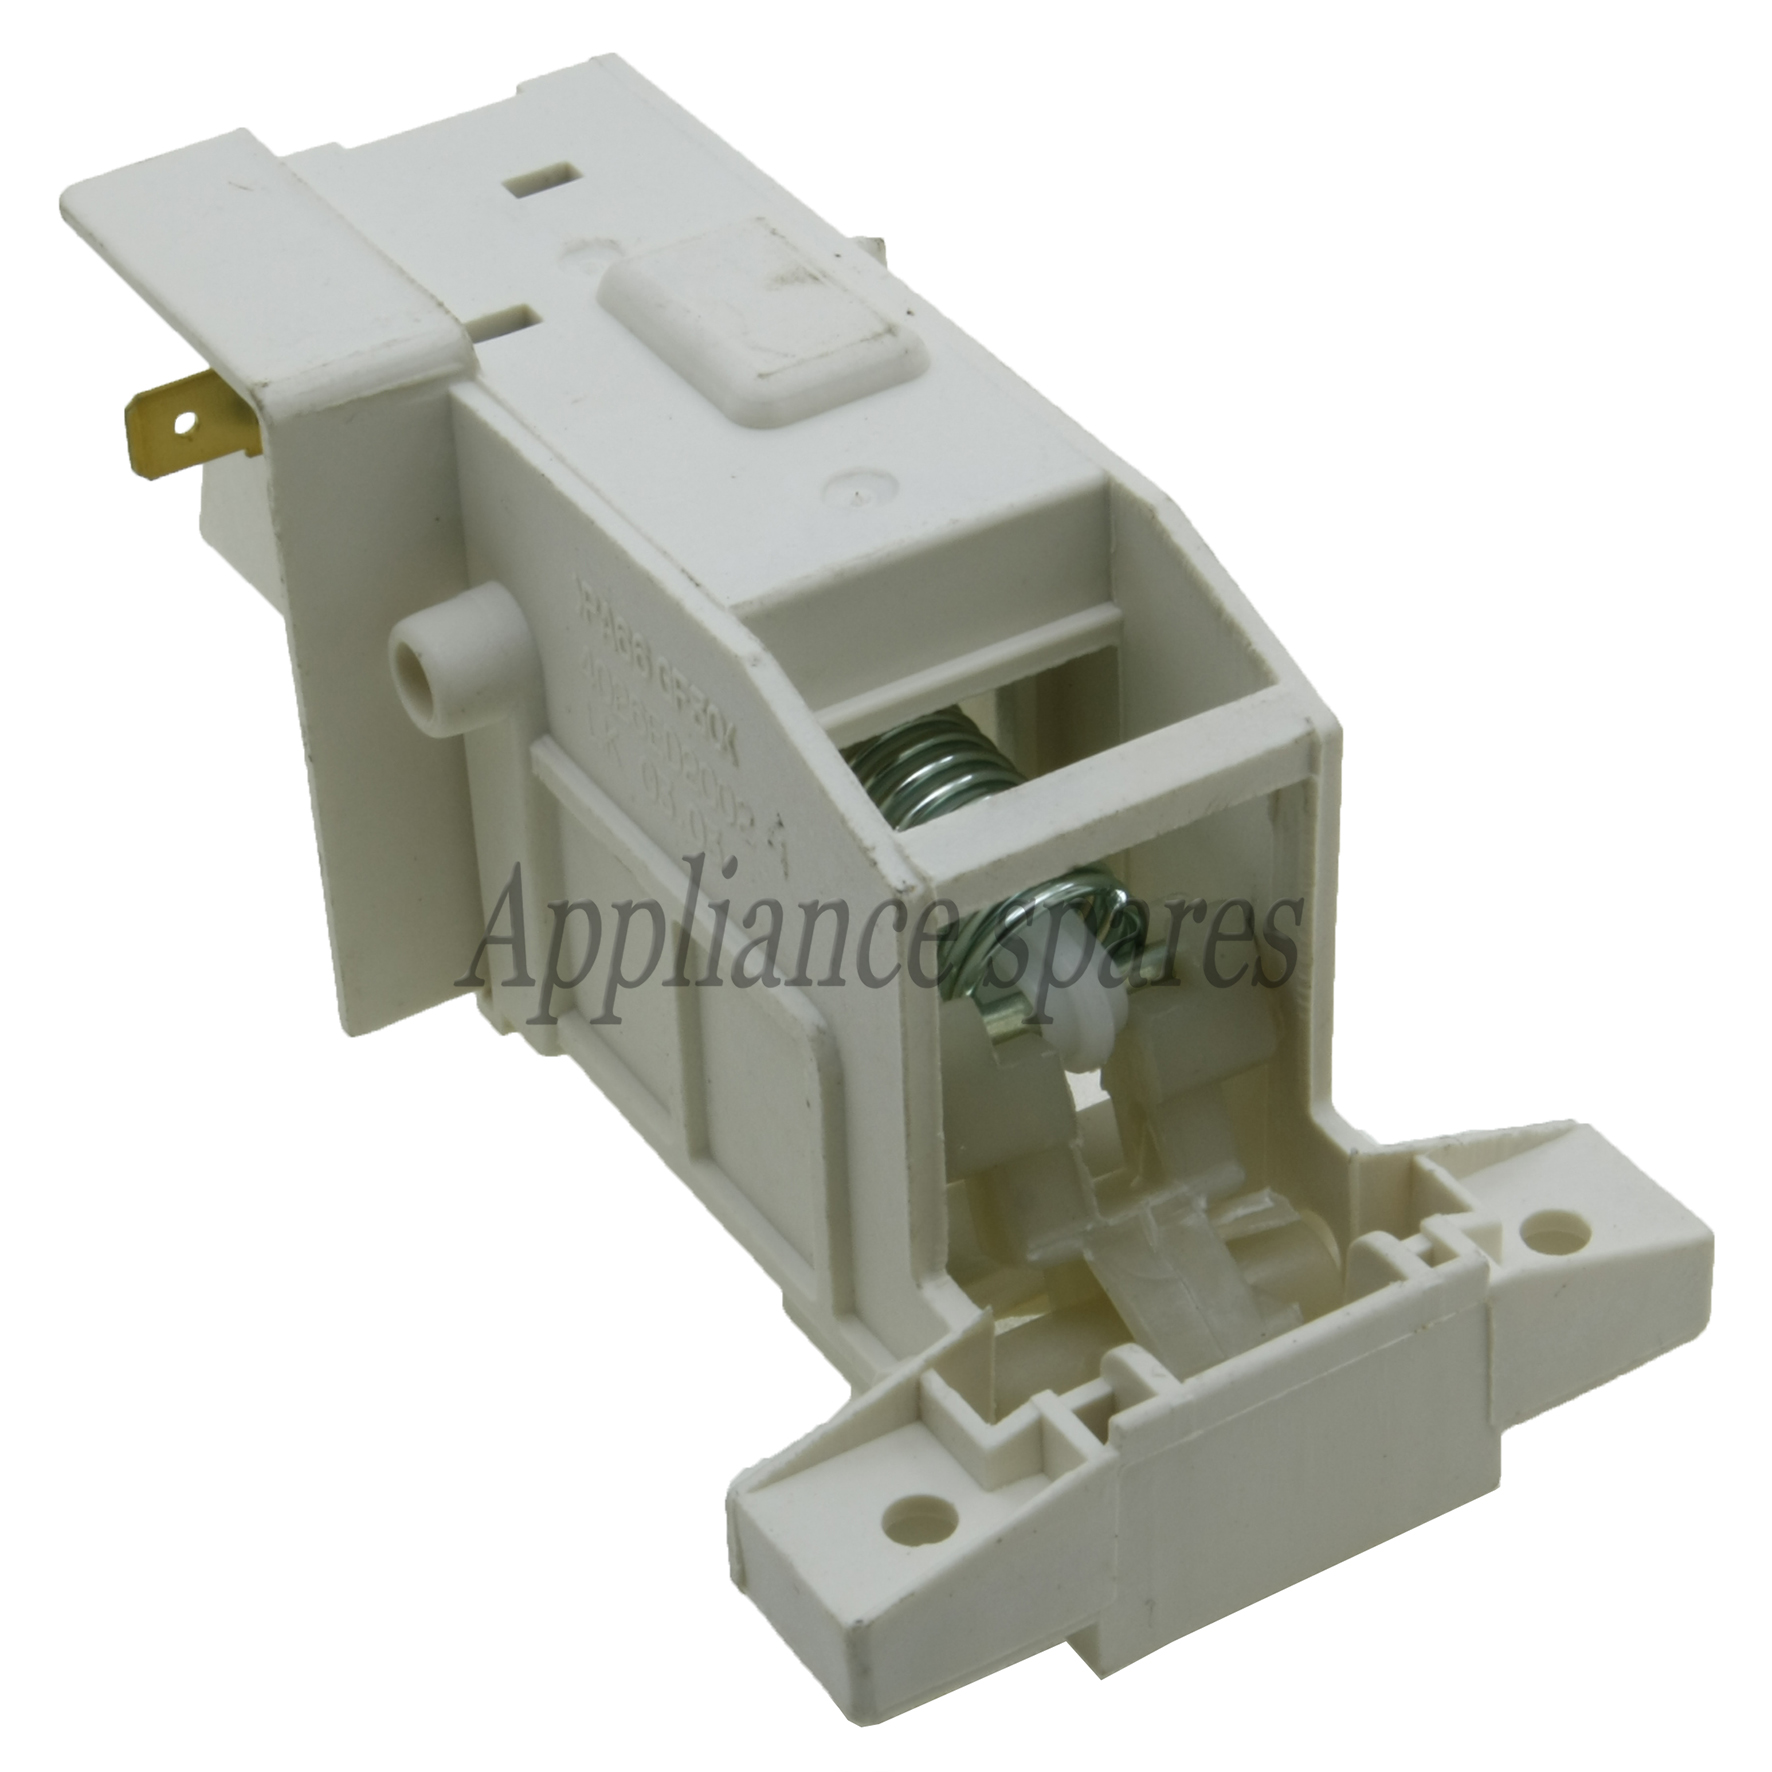 LG DISHWASHER DOOR LATCH